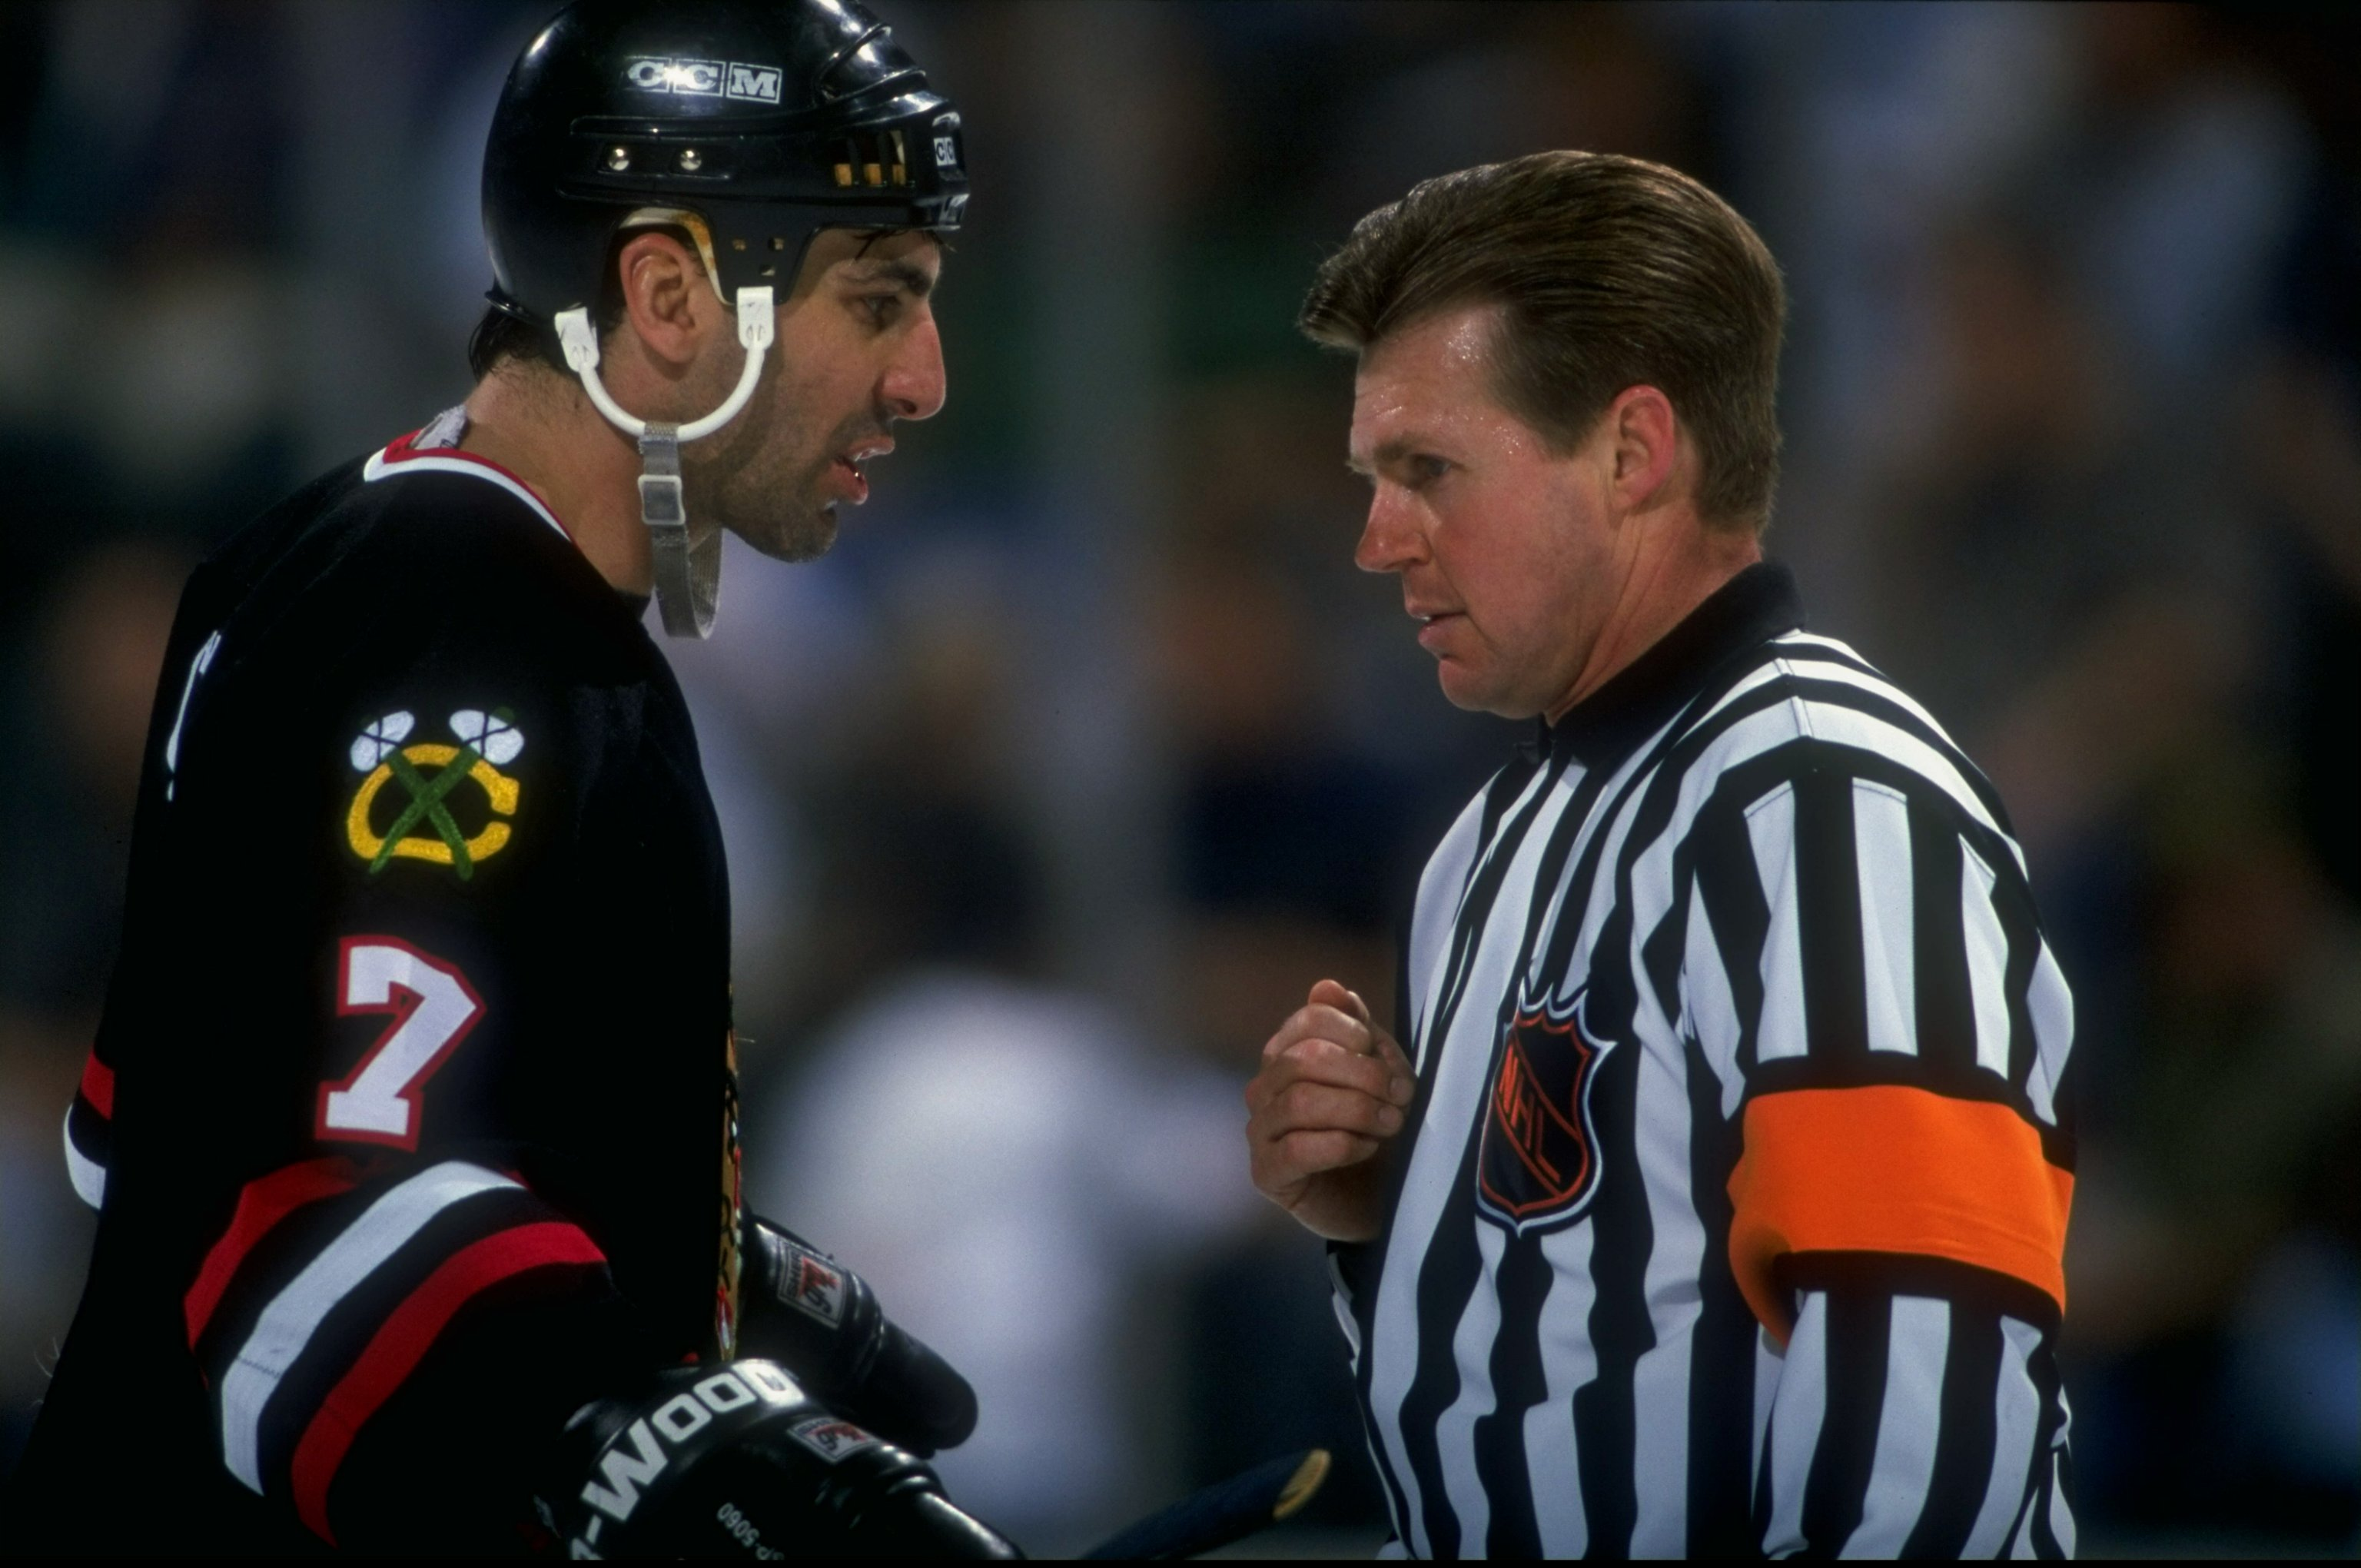 Chris Chelios talks with a referee